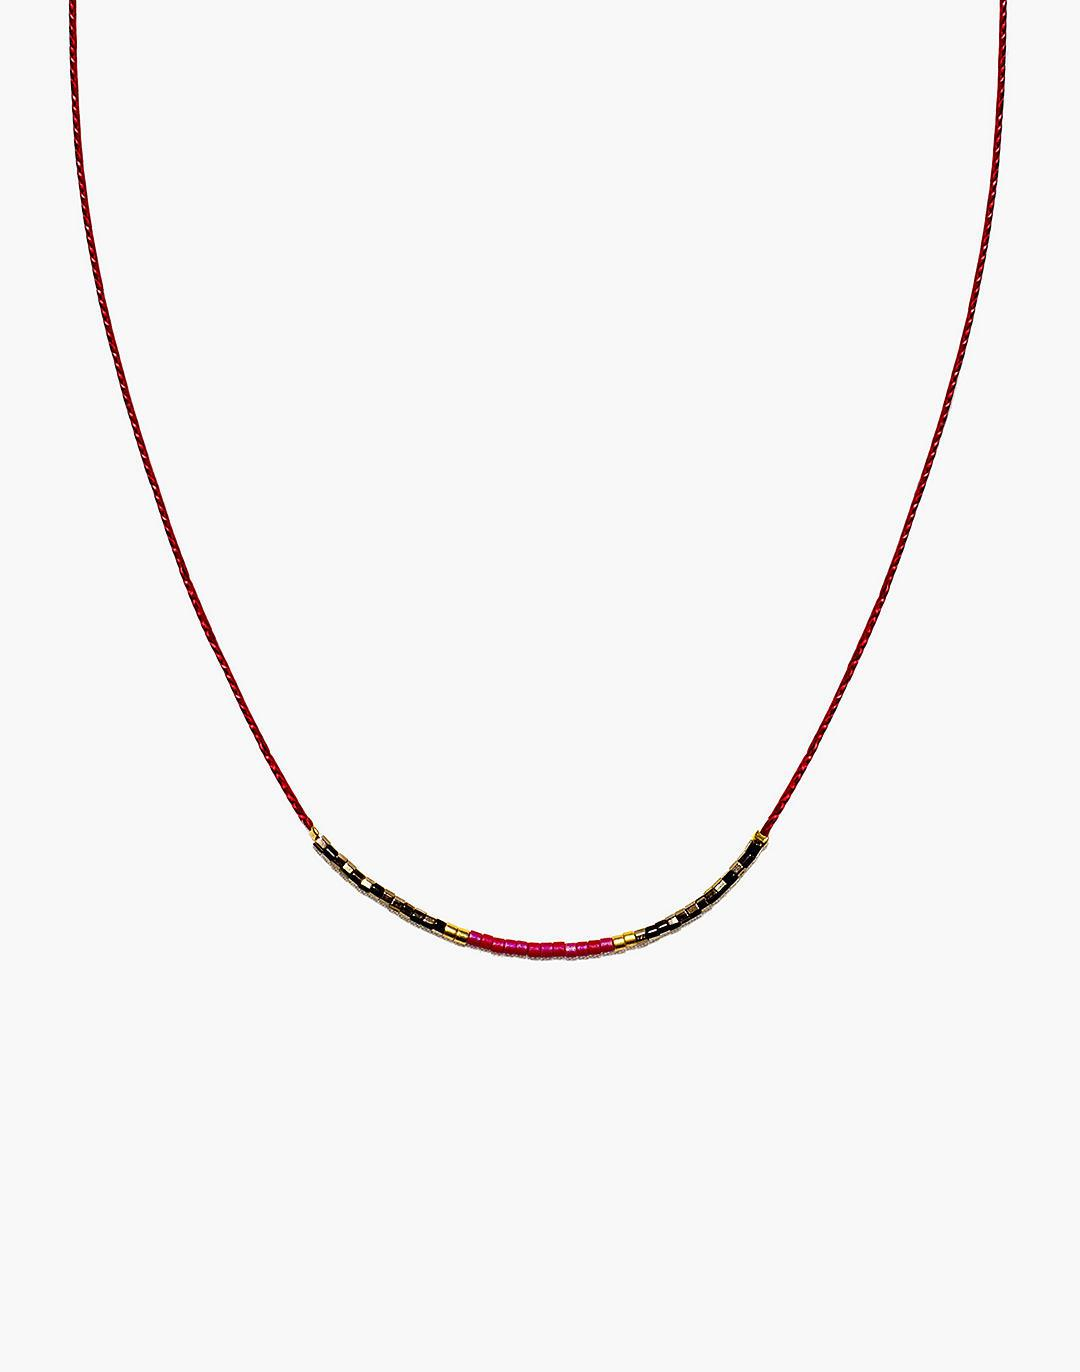 Cast of Stones Beaded Intention Necklace in Red and Metallic